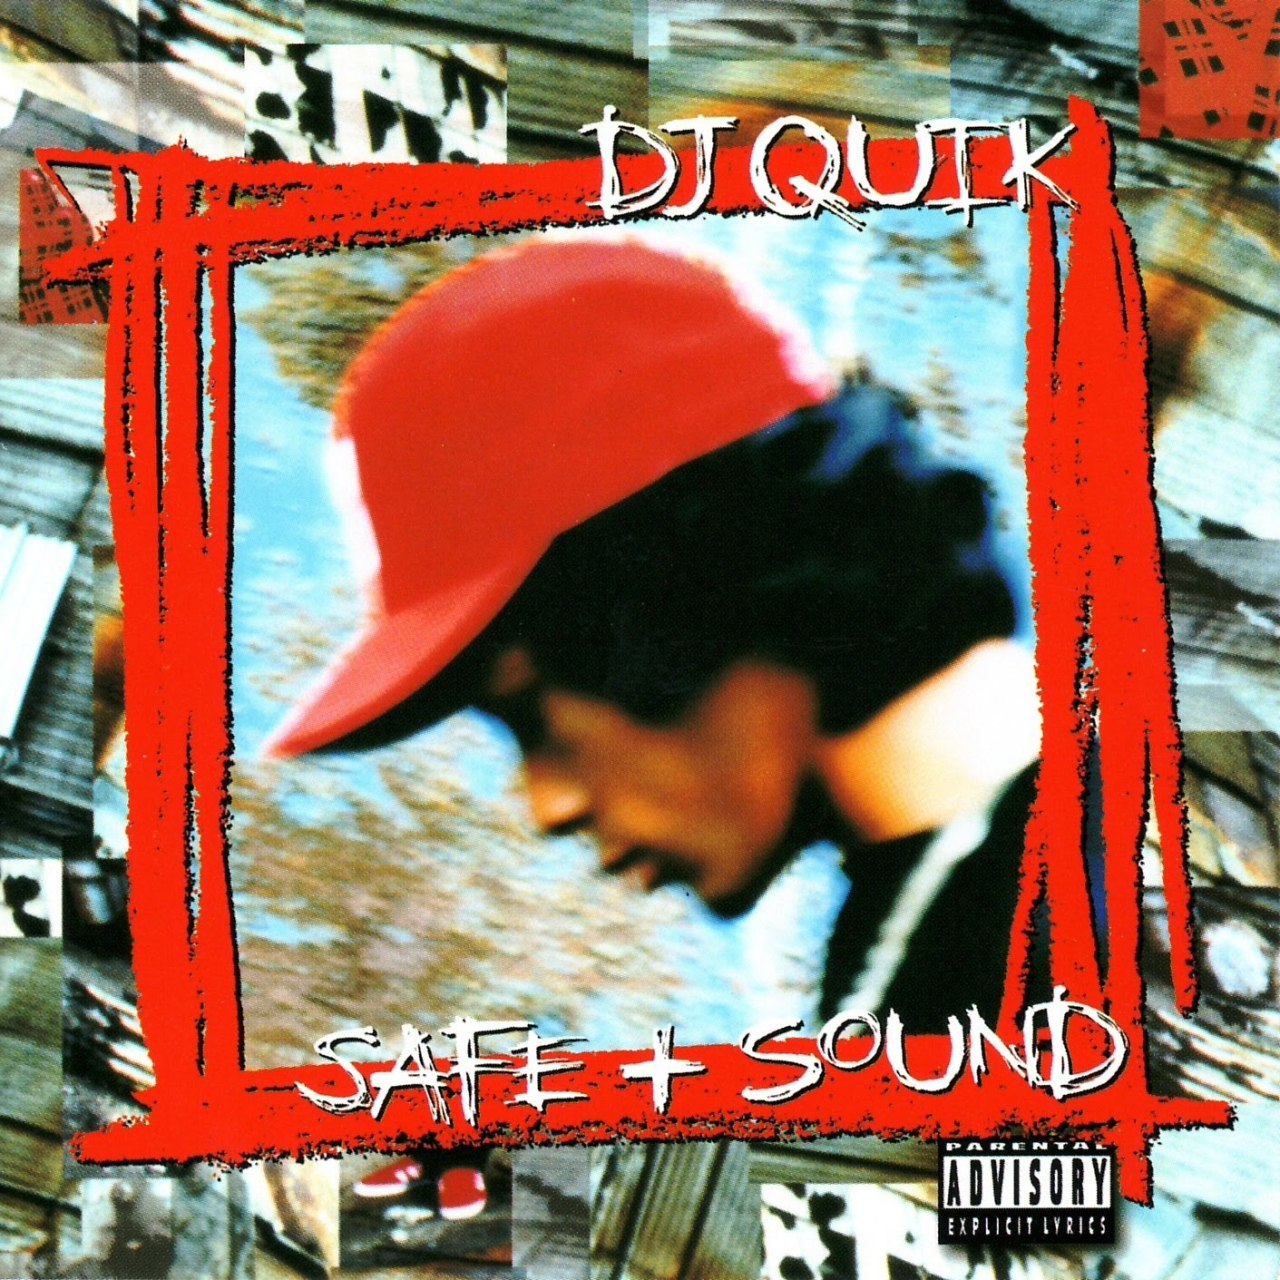 BACK IN THE DAY |2/21/95| DJ Quik released his third album, Safe + Sound, on Skip Sailor Recordings.